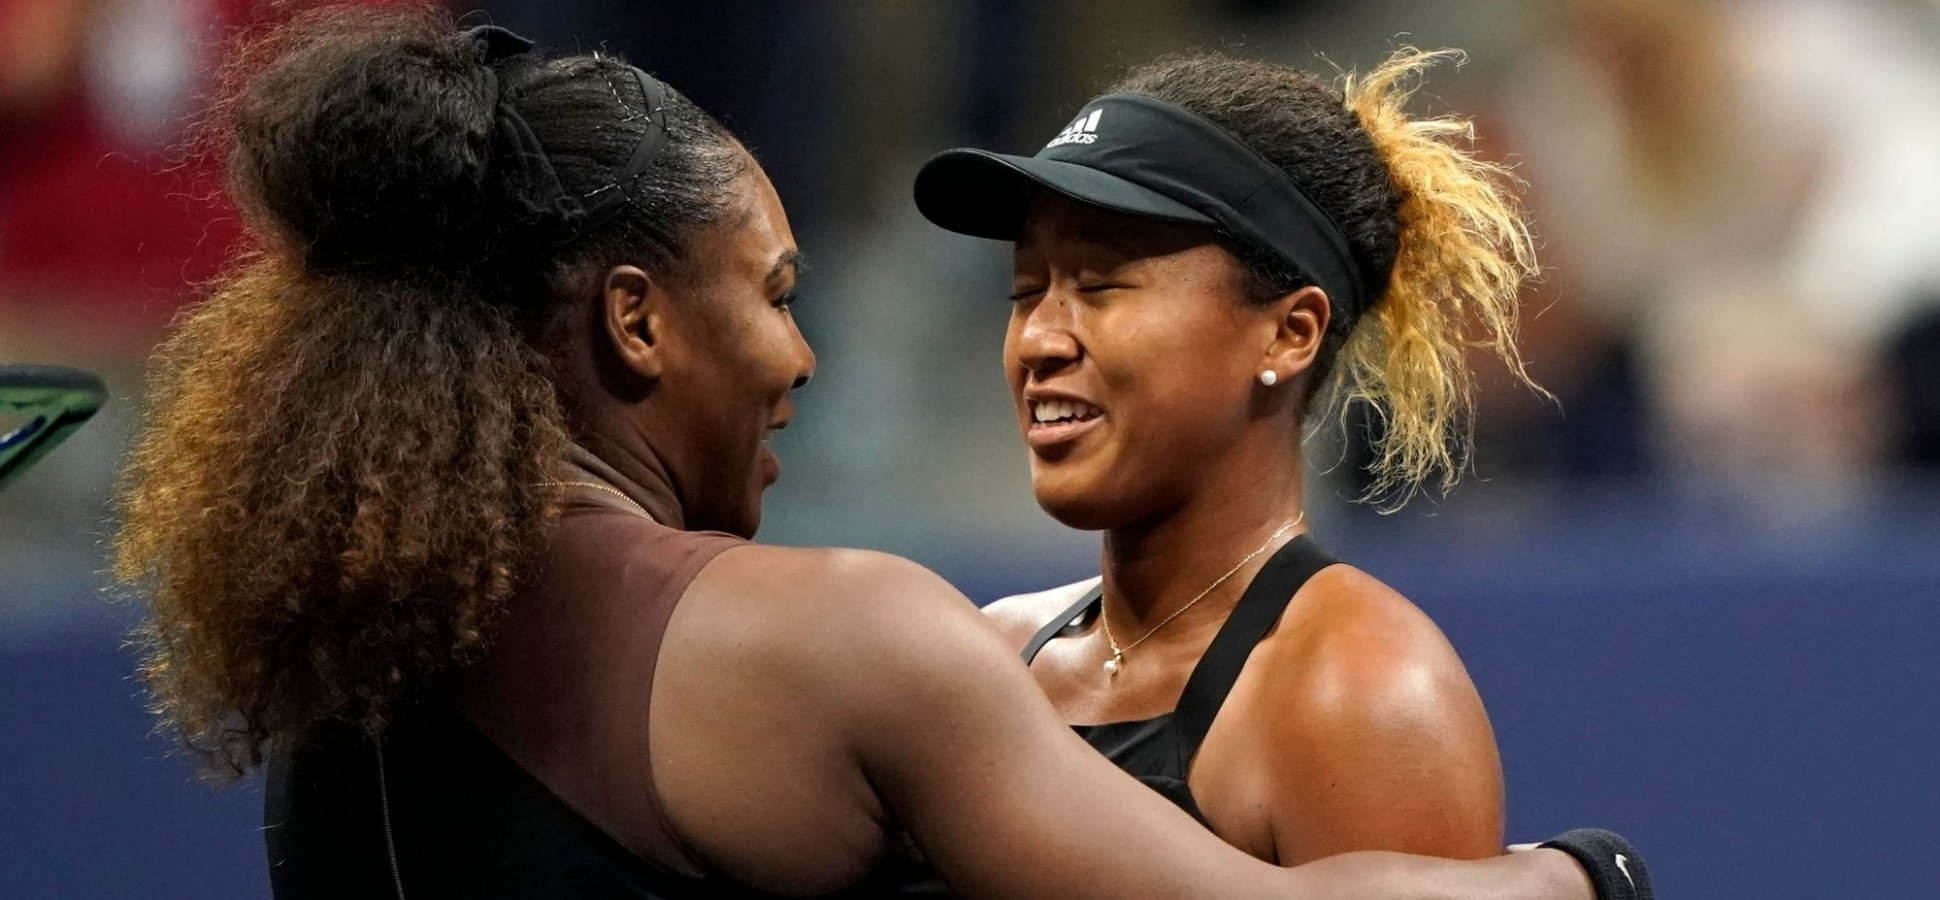 Serena Williams Just Performed a Stunning Act of Kindness for the Player Who Defeated Her in the U.S. Open